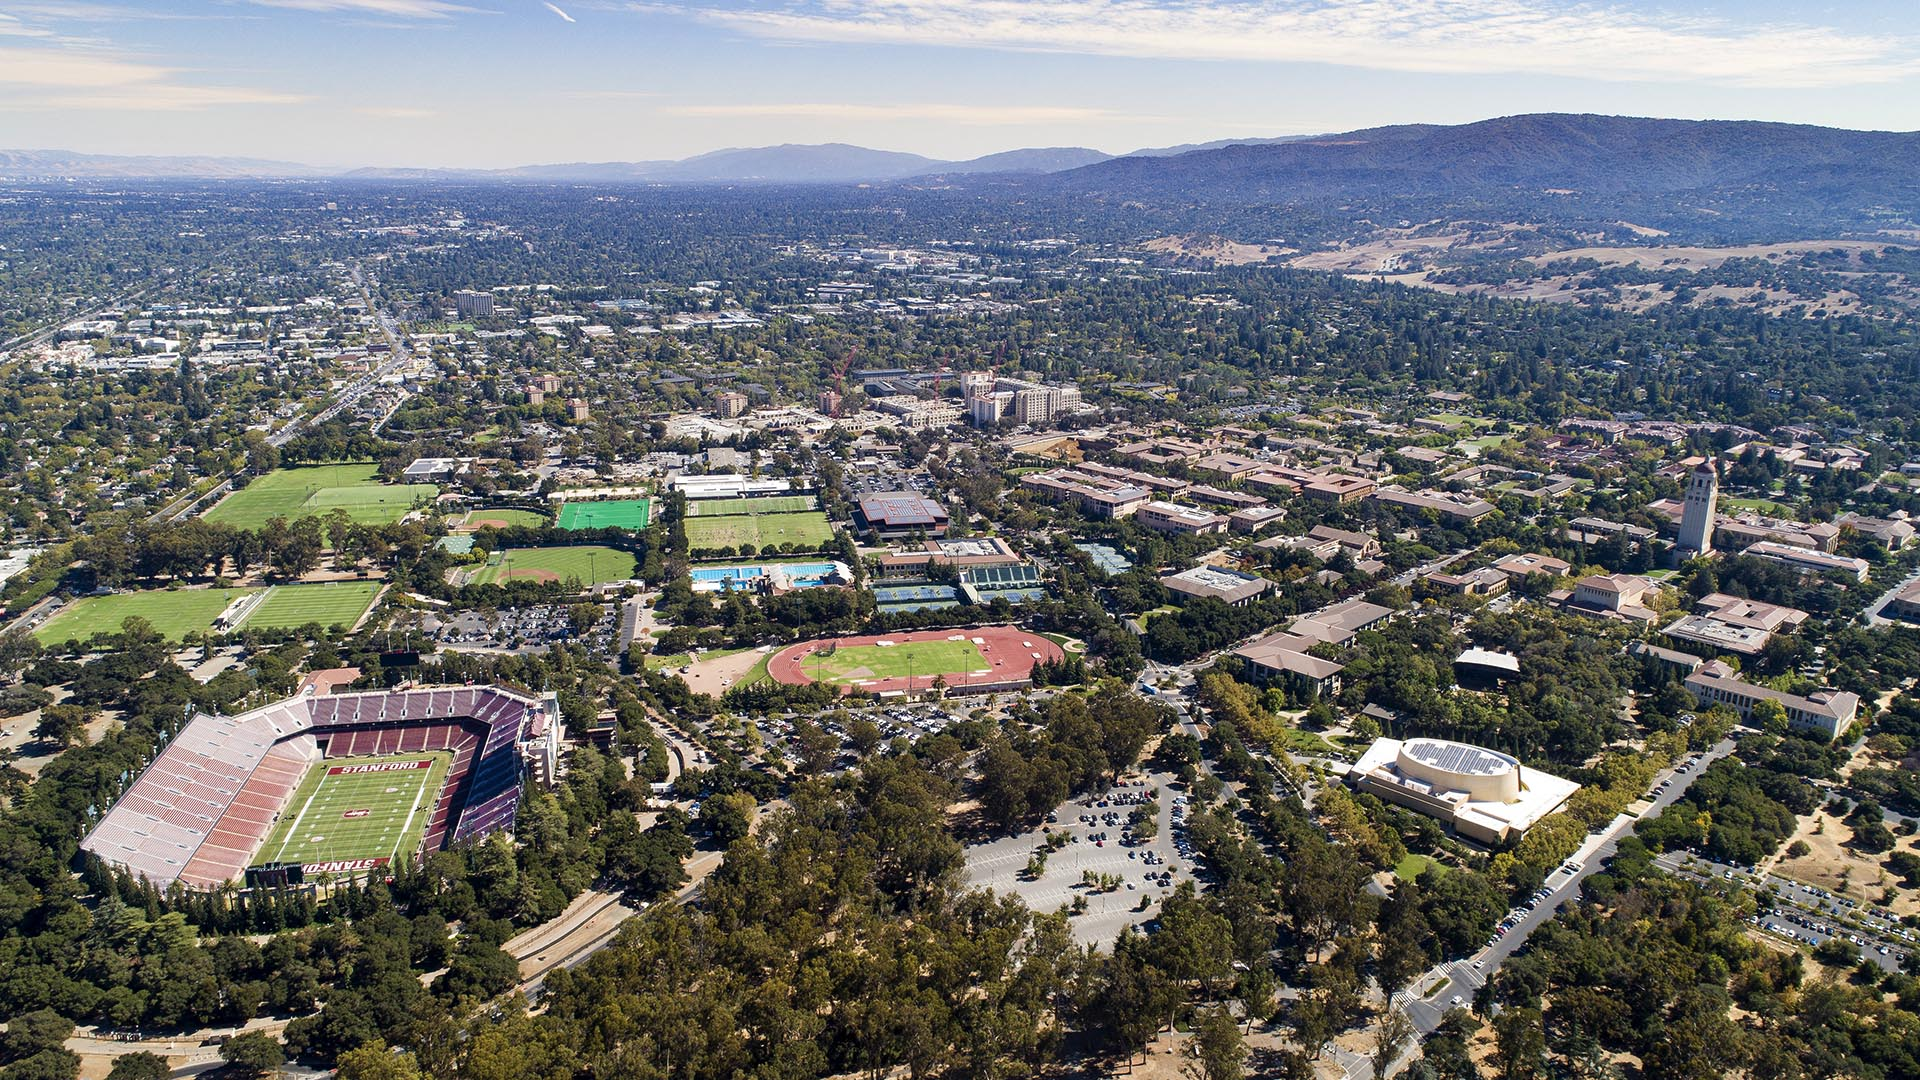 Stanford University Campus Planning and Projects - SWA Group